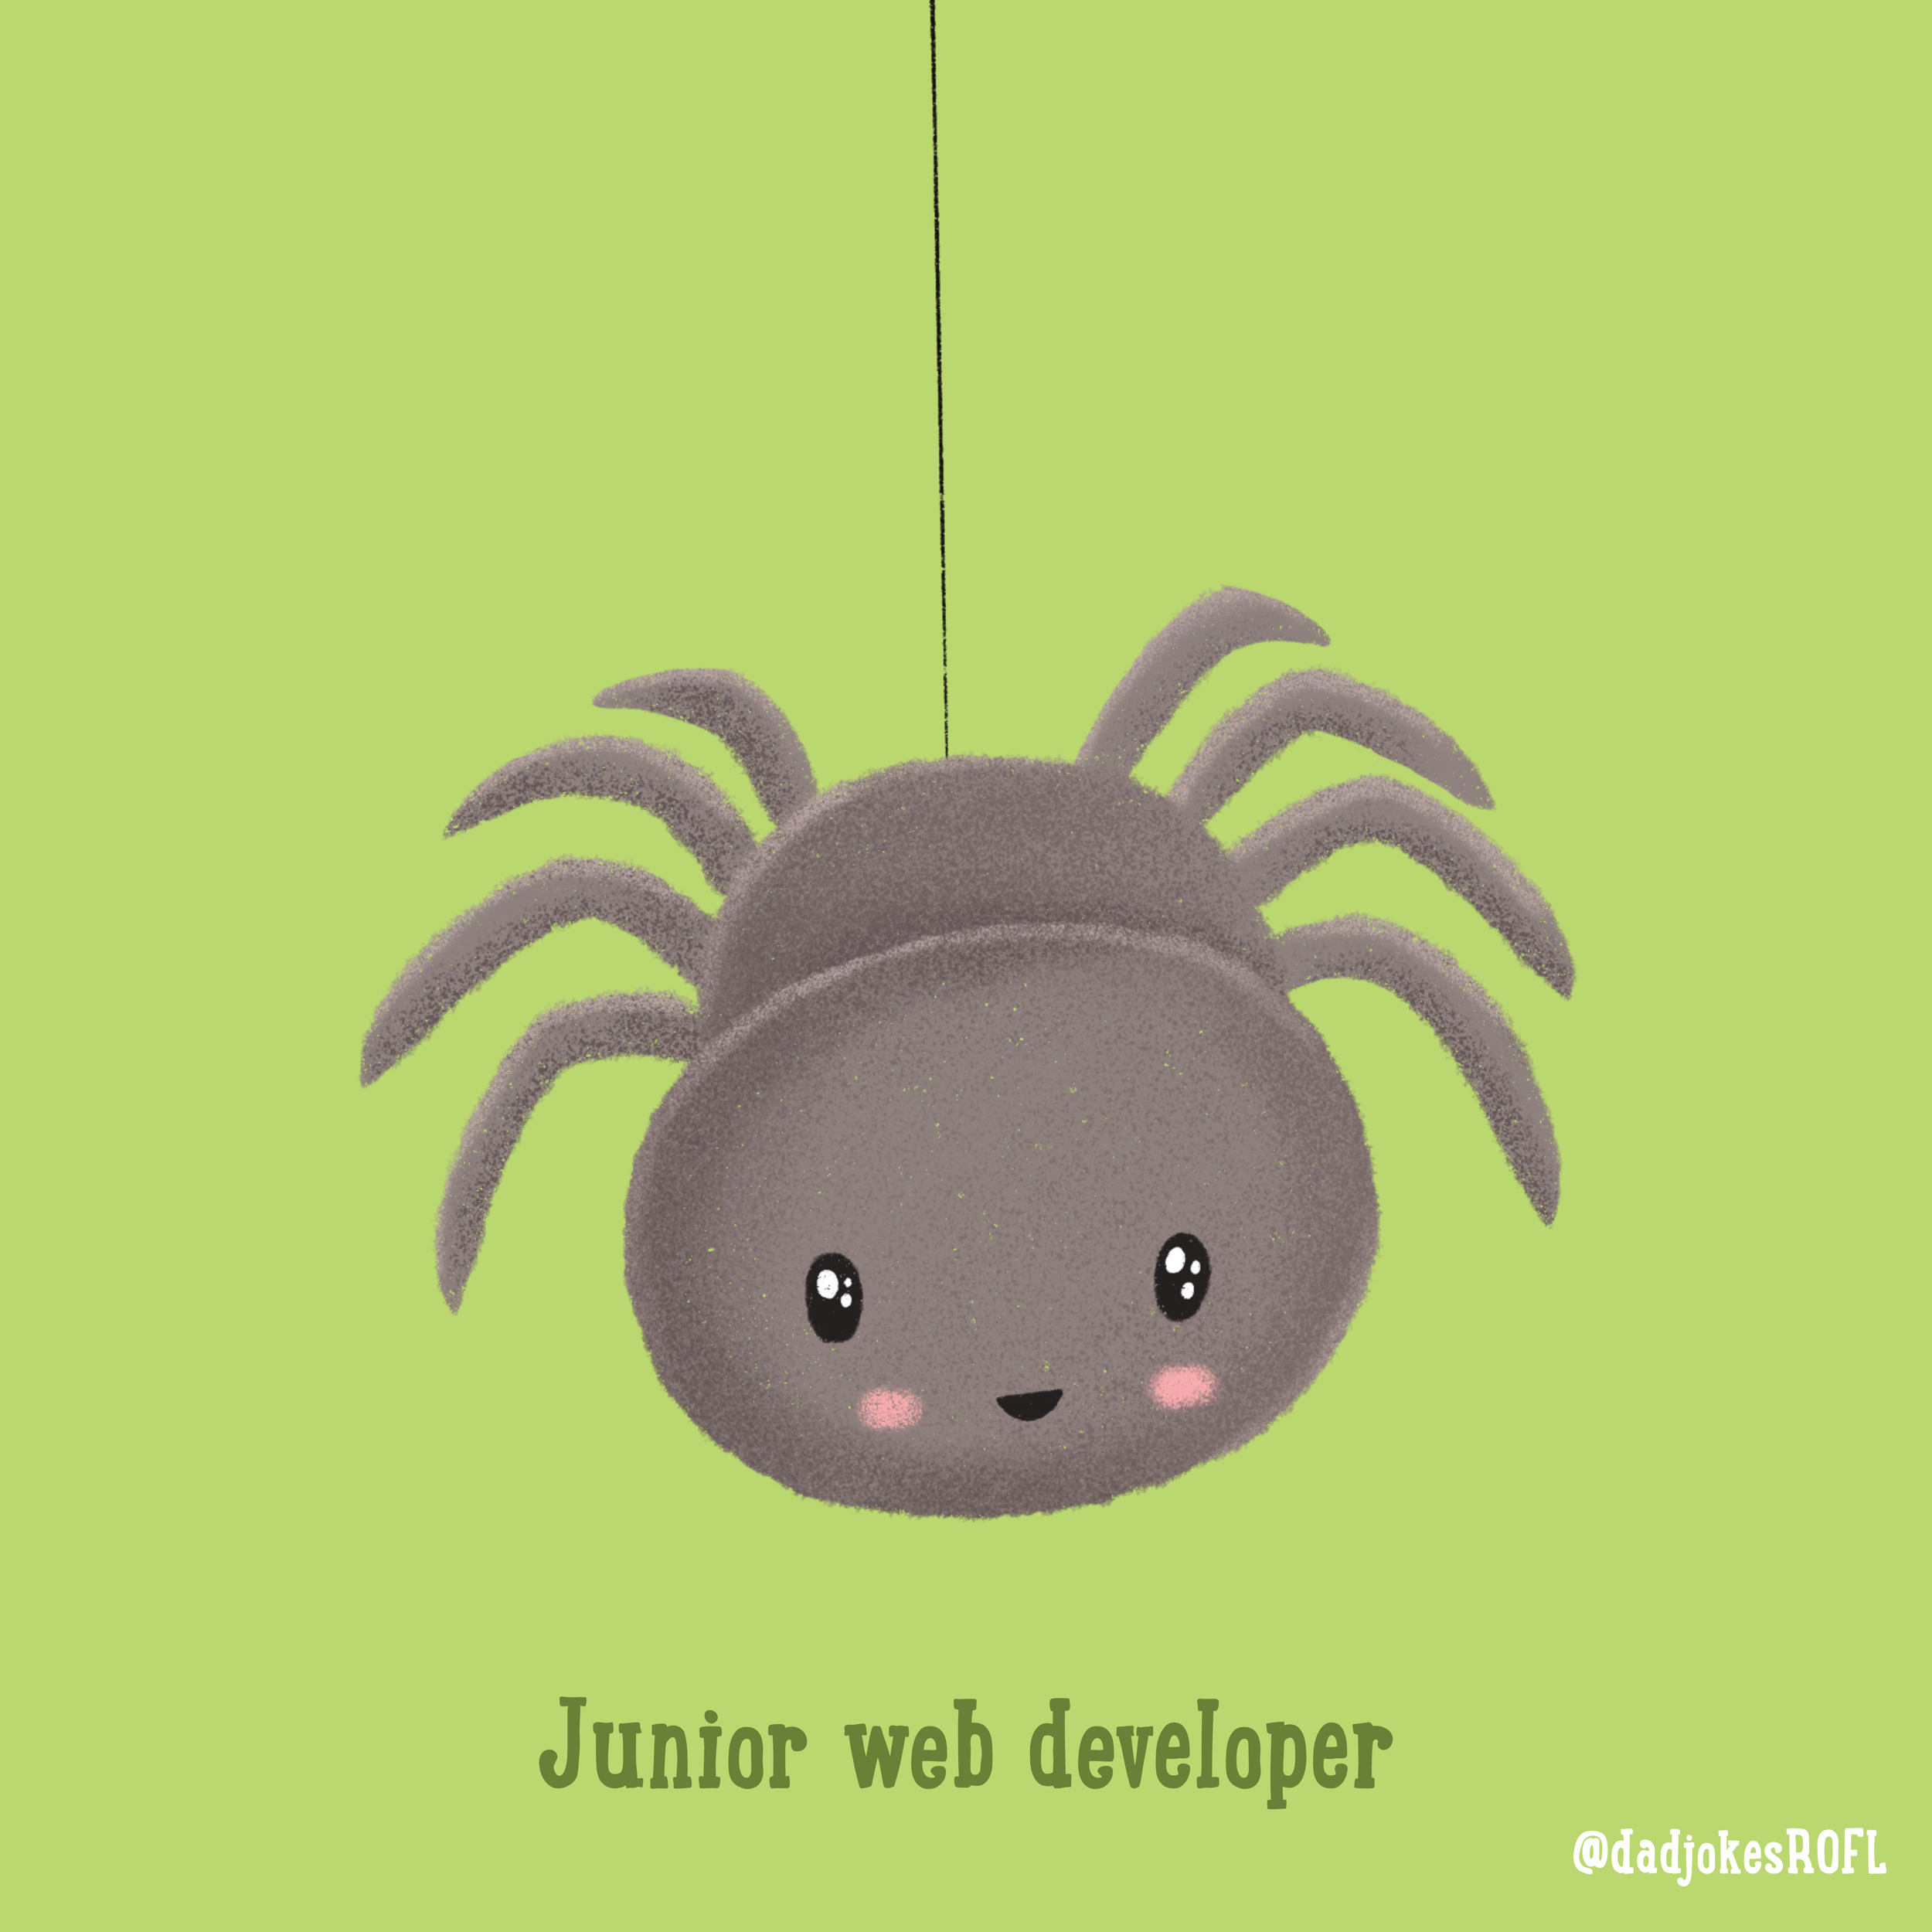 Junior web developer